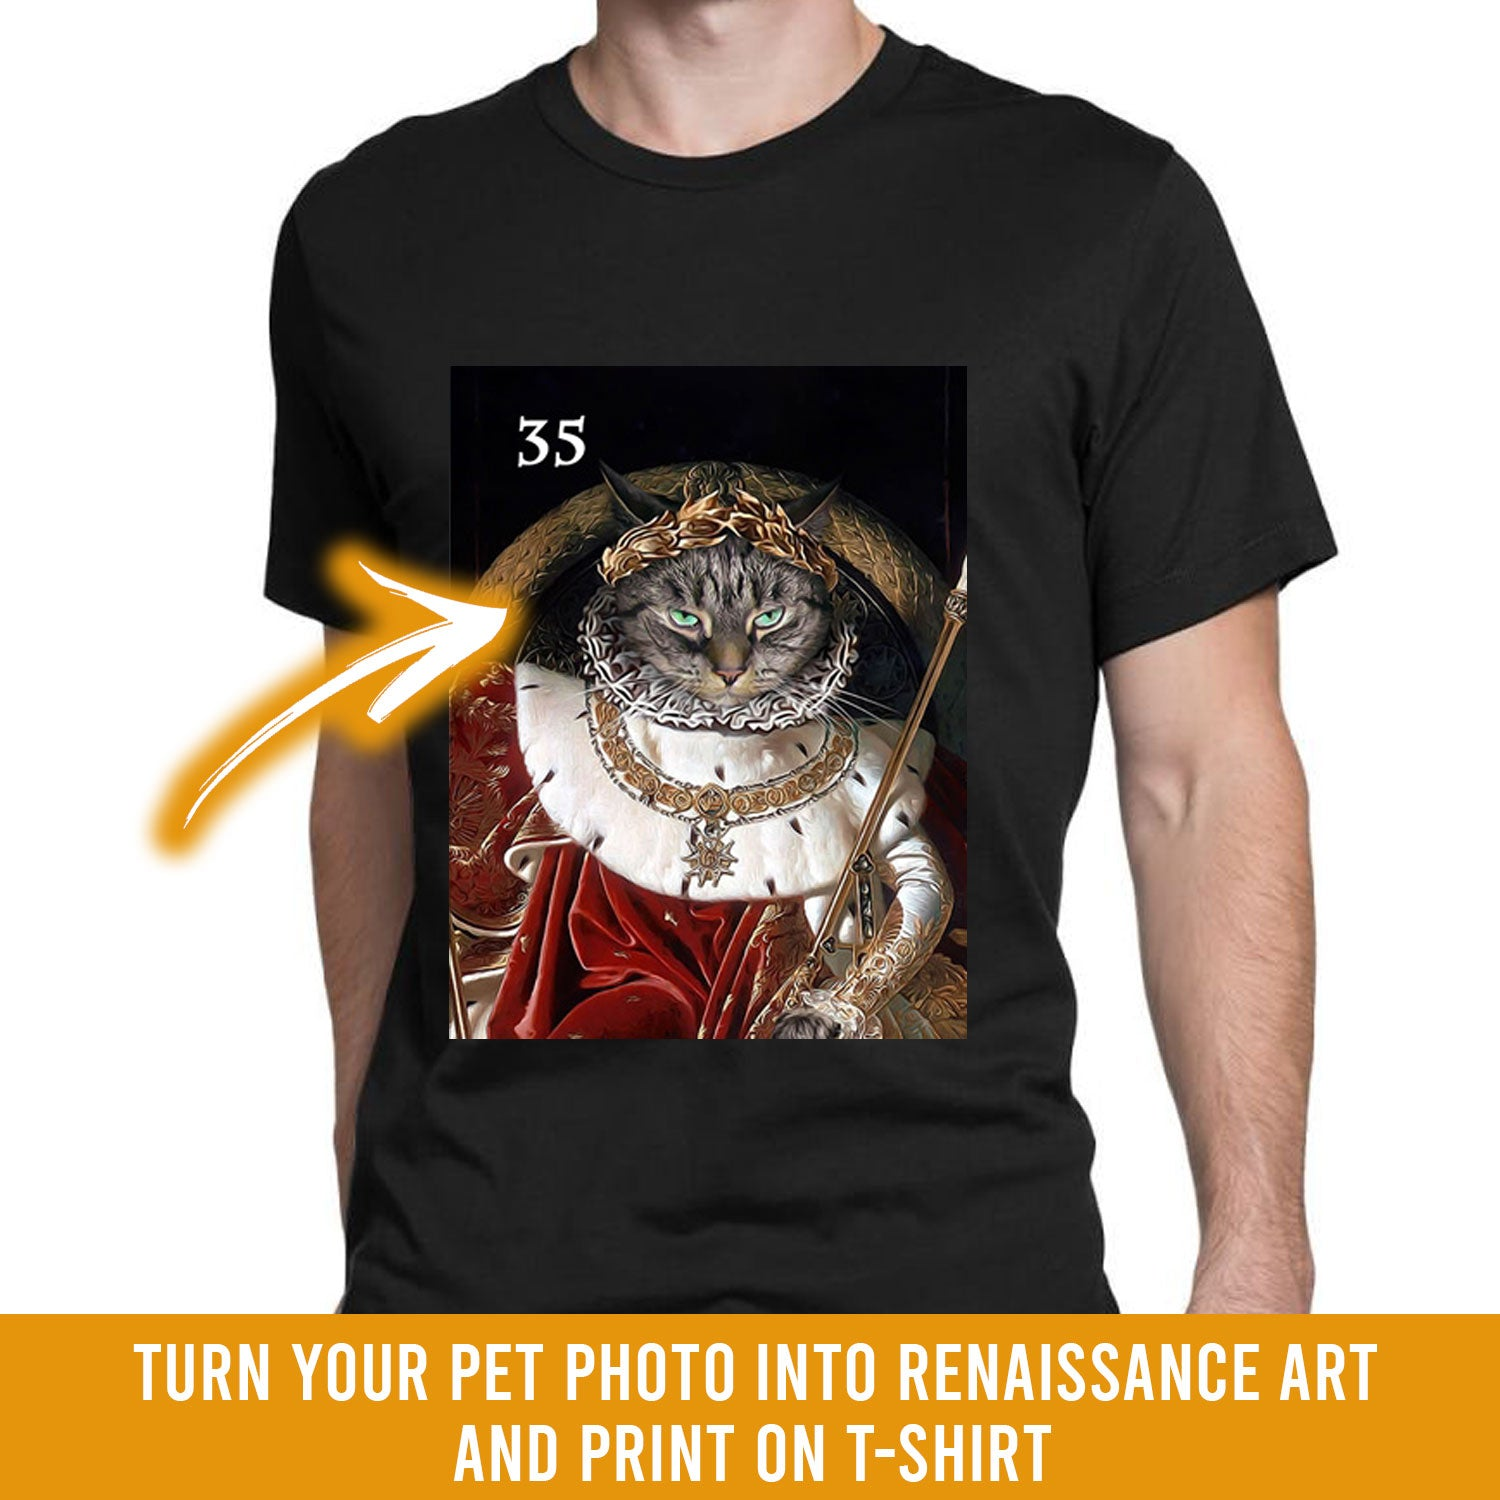 Renaissance historical M-35 male pet portrait